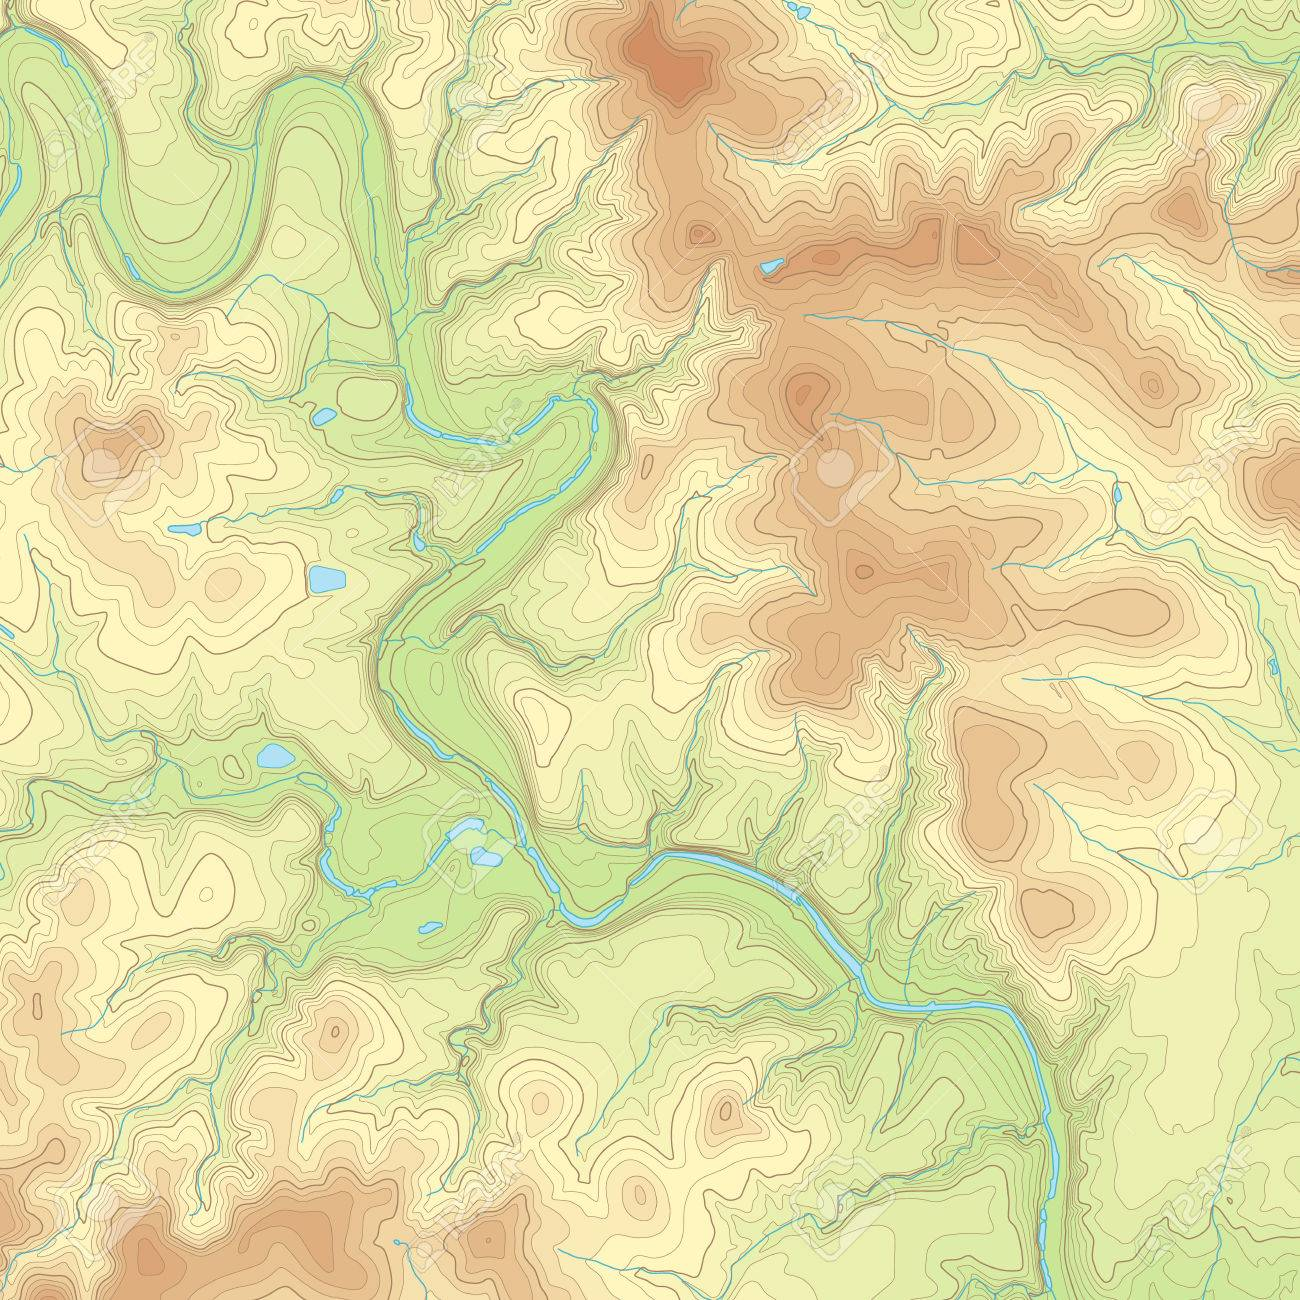 Realistic Topographic Map Of An Area West Of Austin Texas Vector - Texas topographic maps free